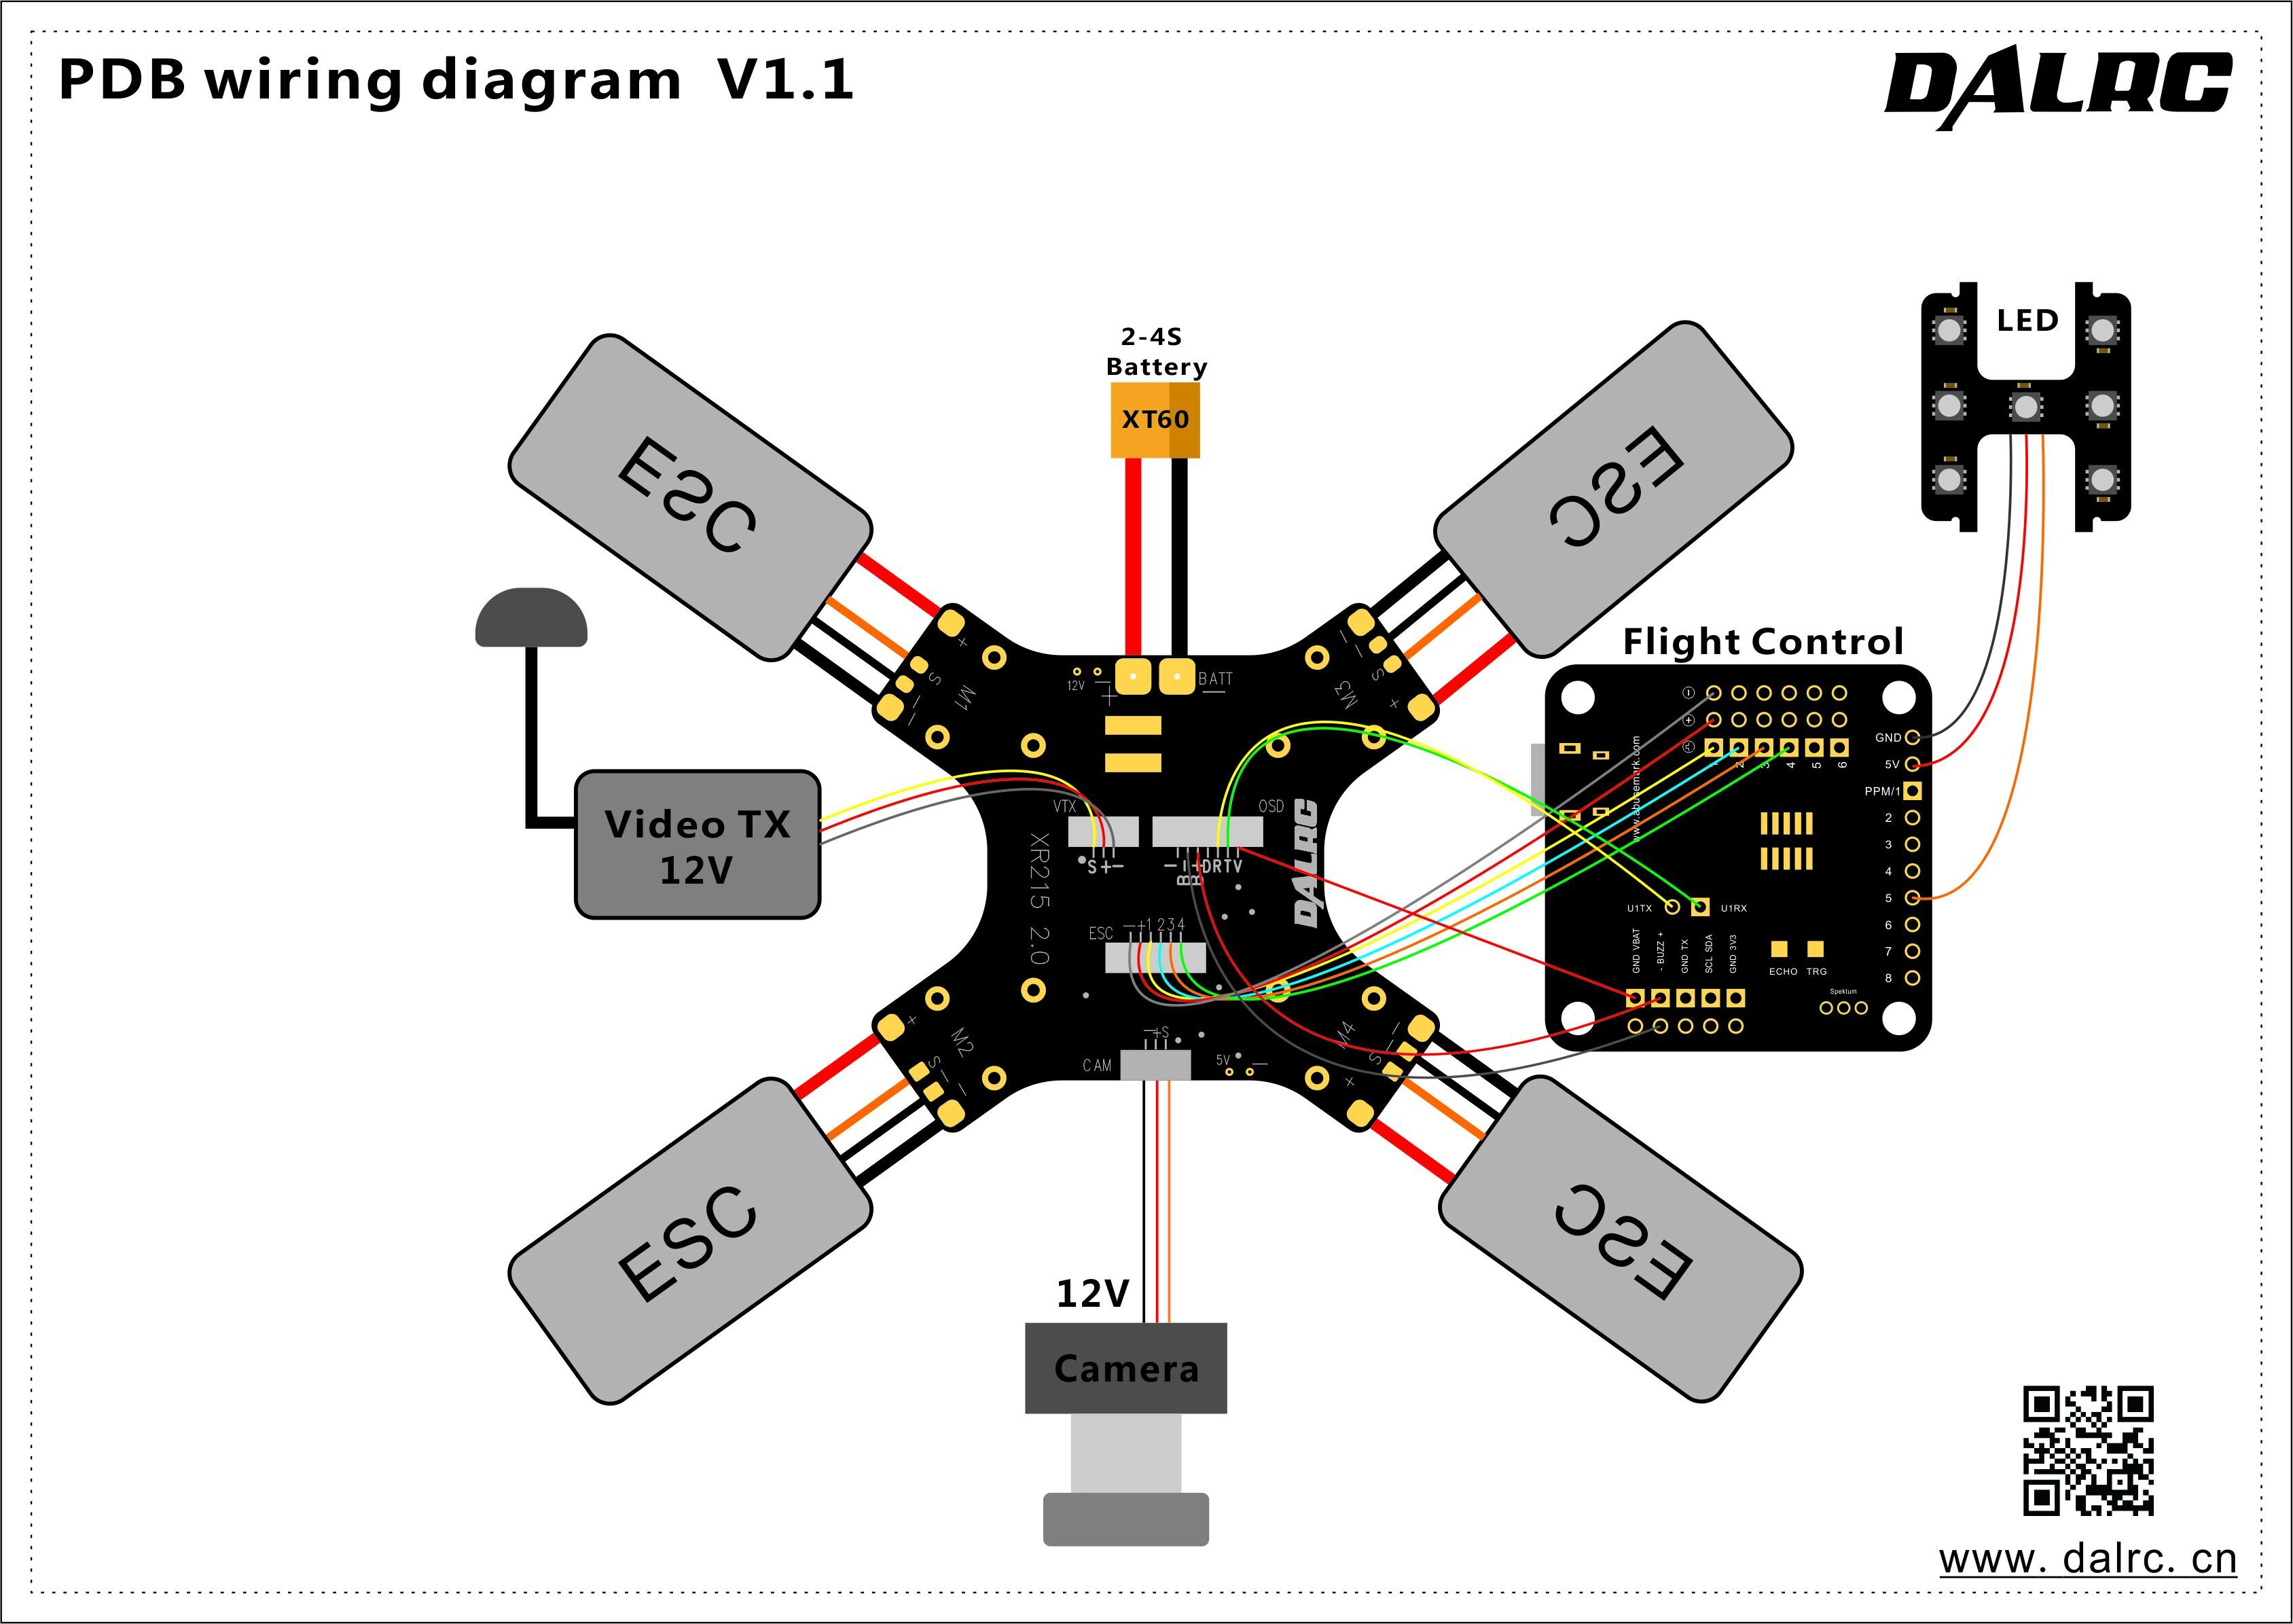 DalRC XR215 Plus Wiring Diagram